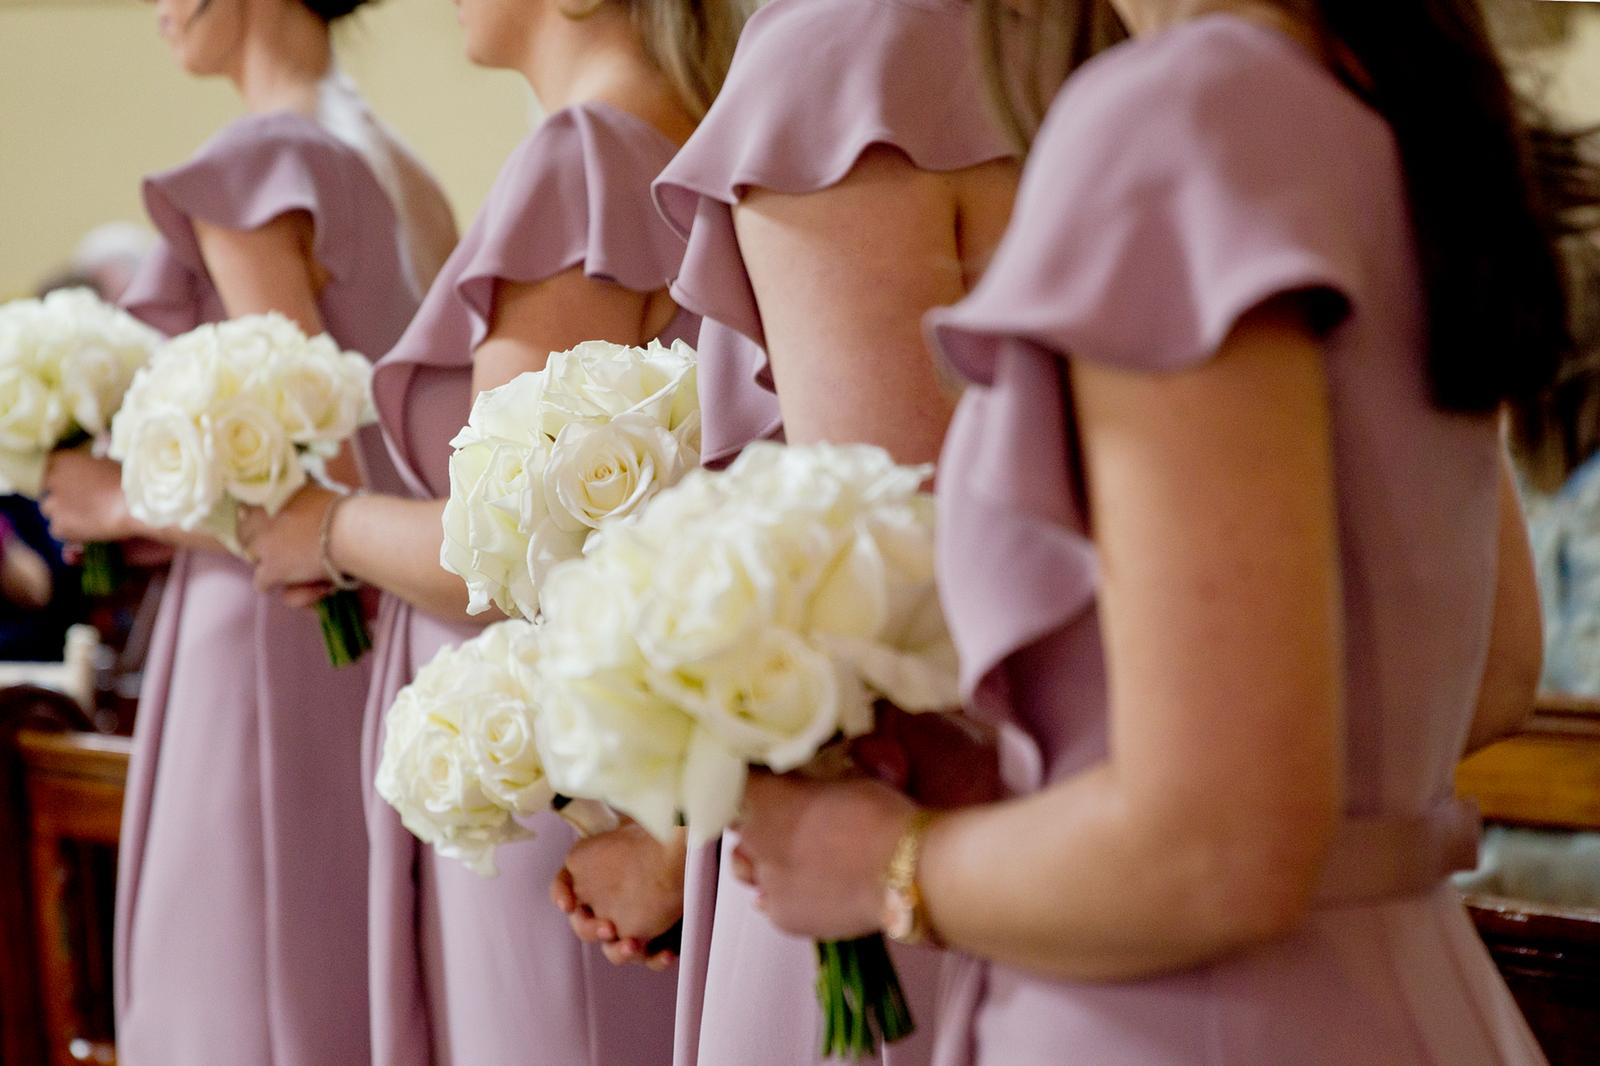 Bridesmaids bouquets of white roses